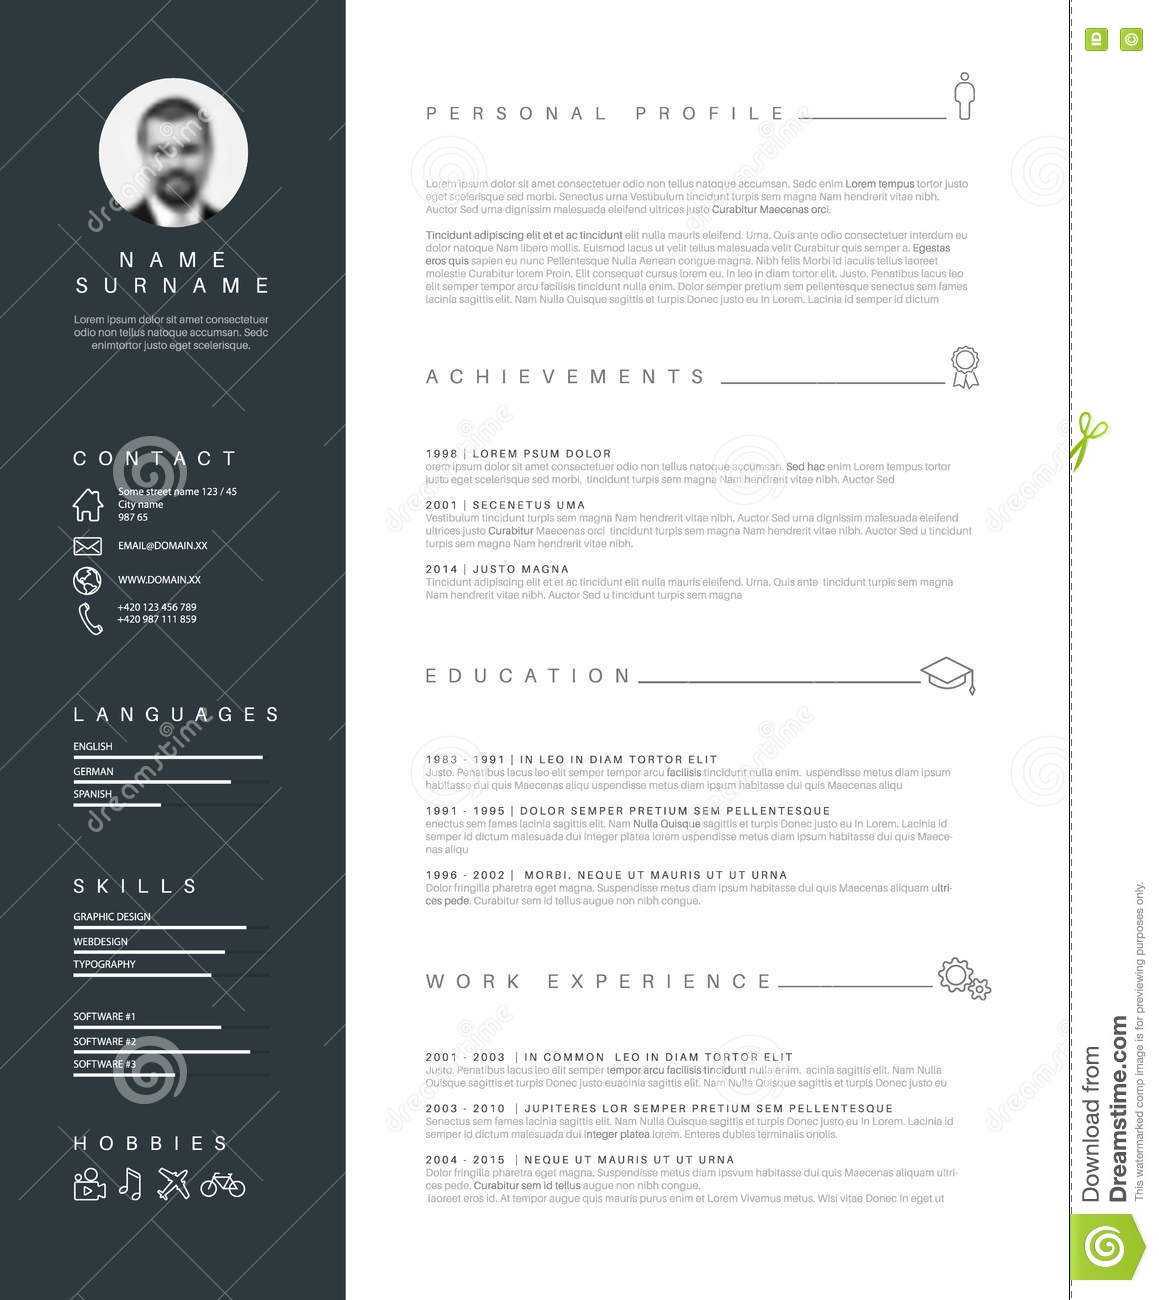 Ikea Teppich Gulört Resume Typography Luxury Cover Letter Resume Sample Samples Good